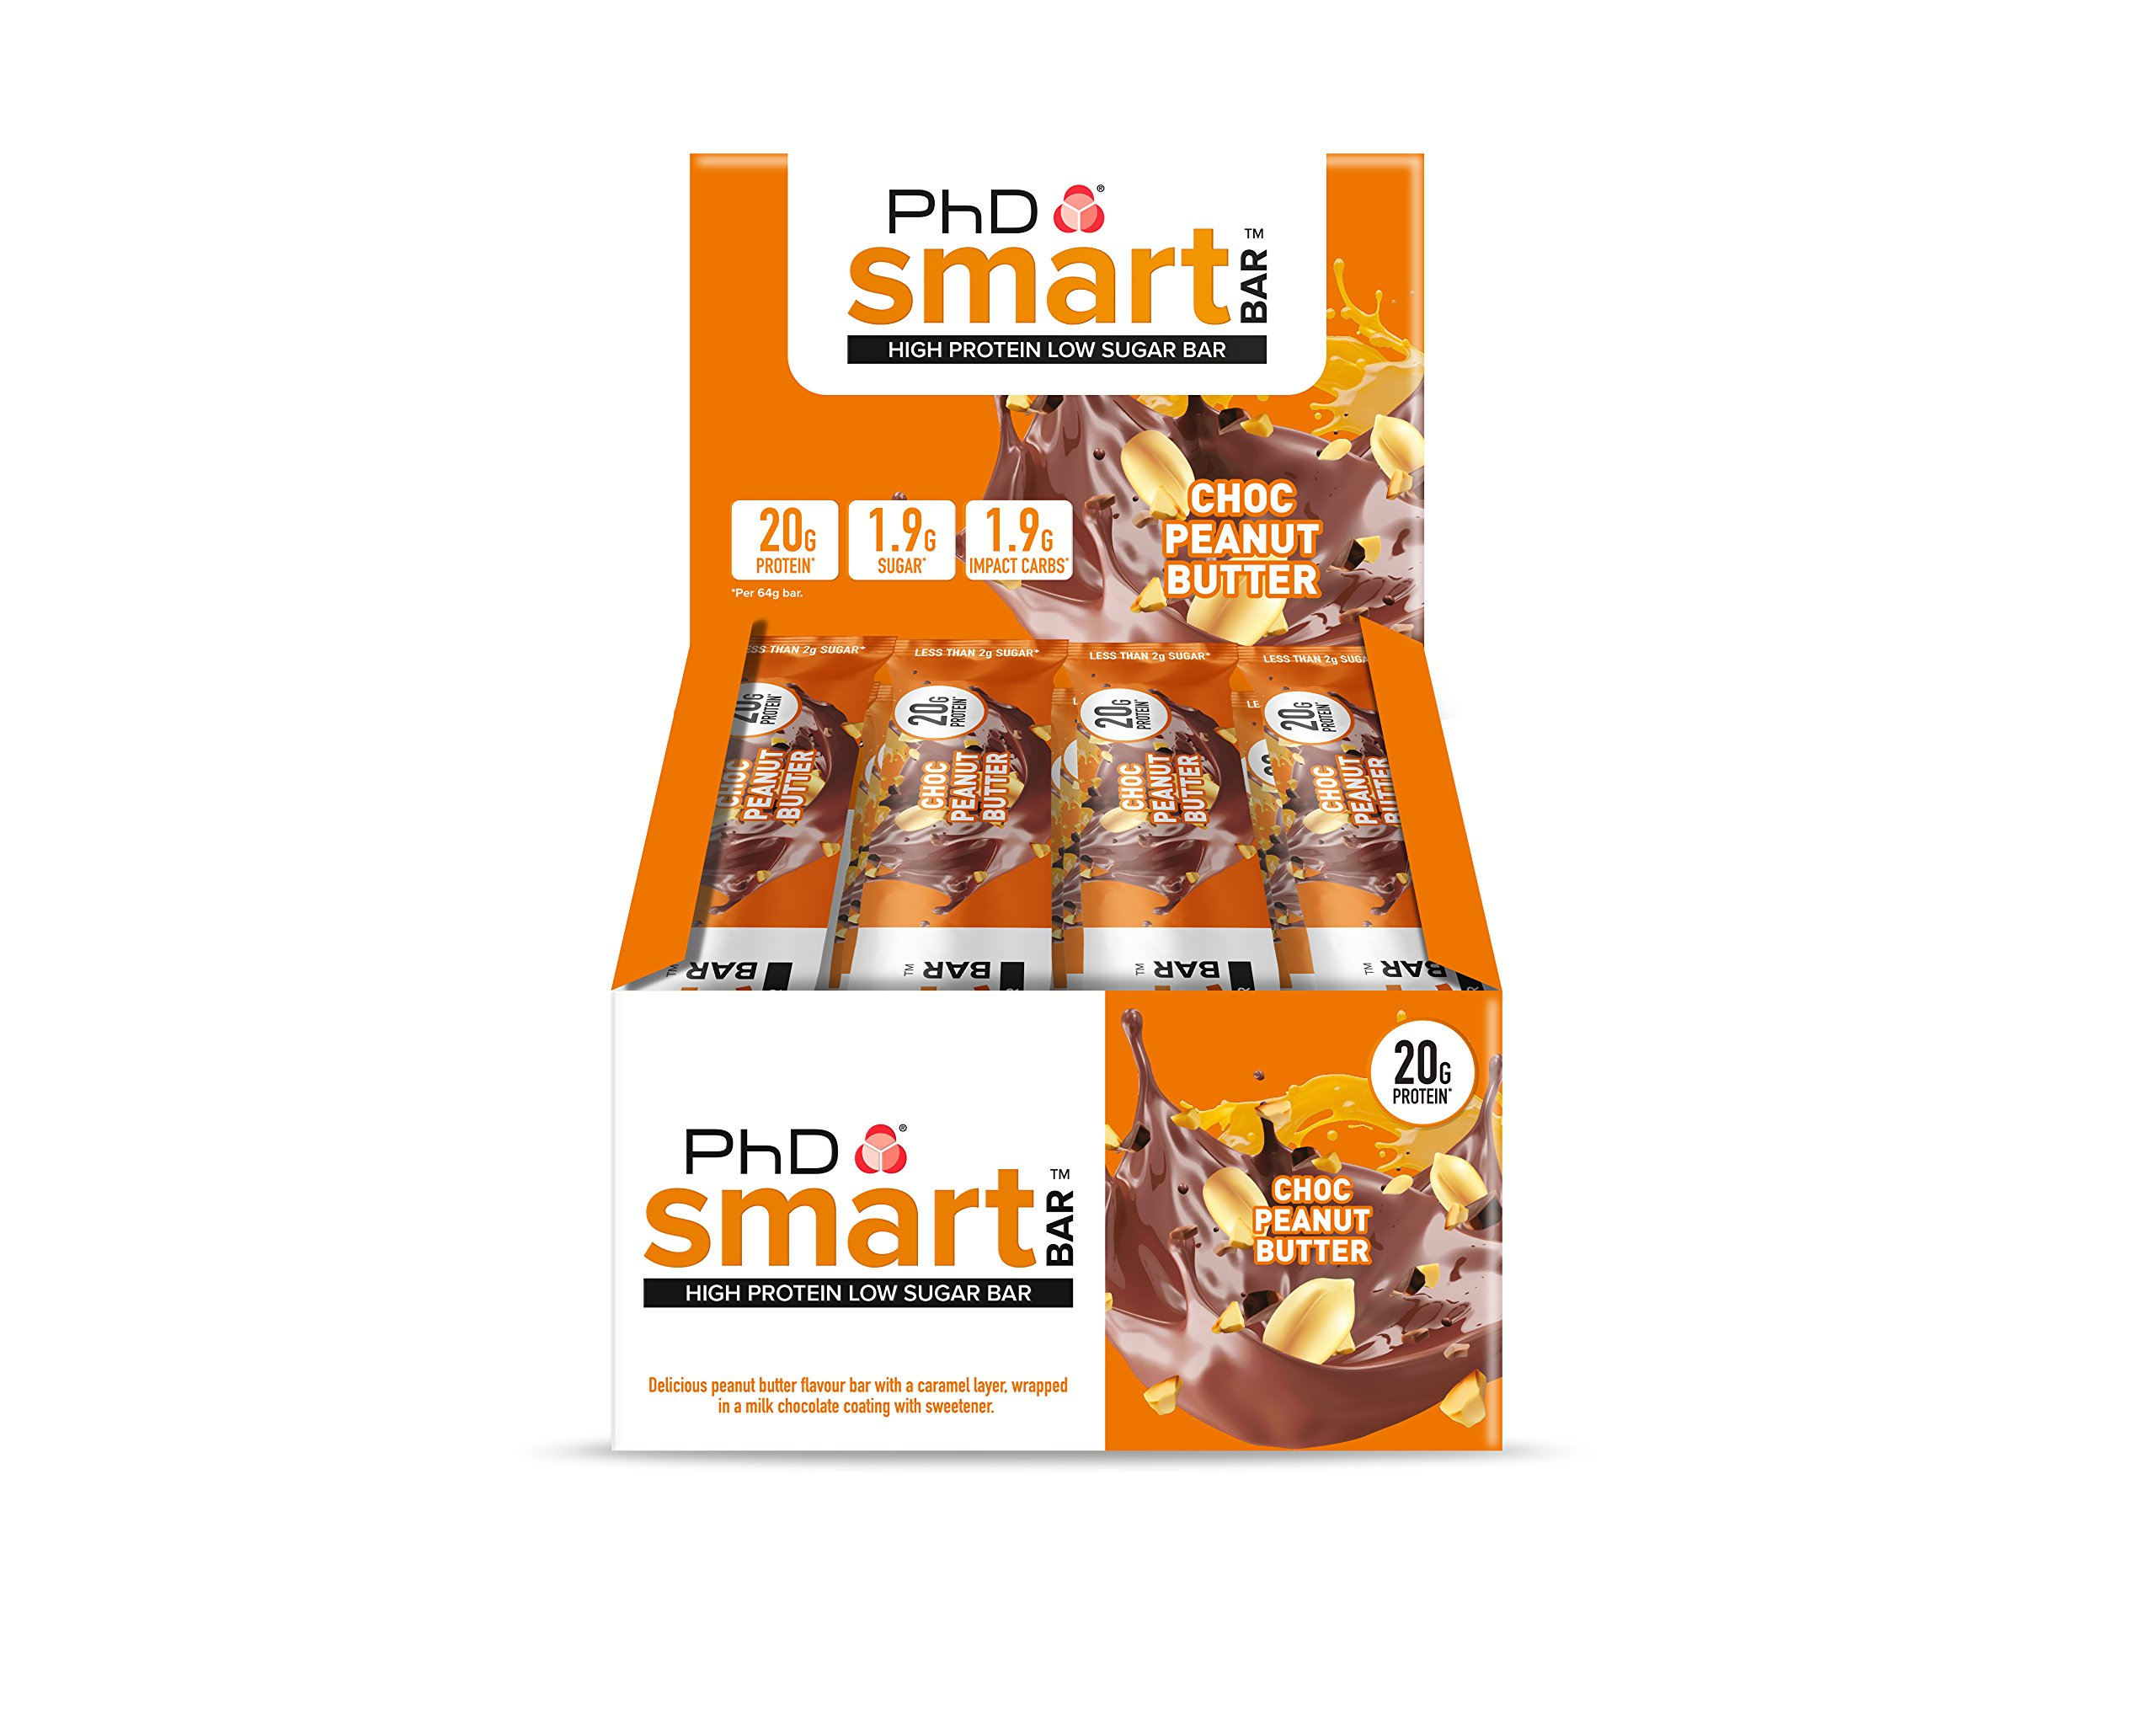 PhD Smart Bar-High Protein Low Sugar Bar, Chocolate Peanut Butter, 64 g, Pack of 12 product image